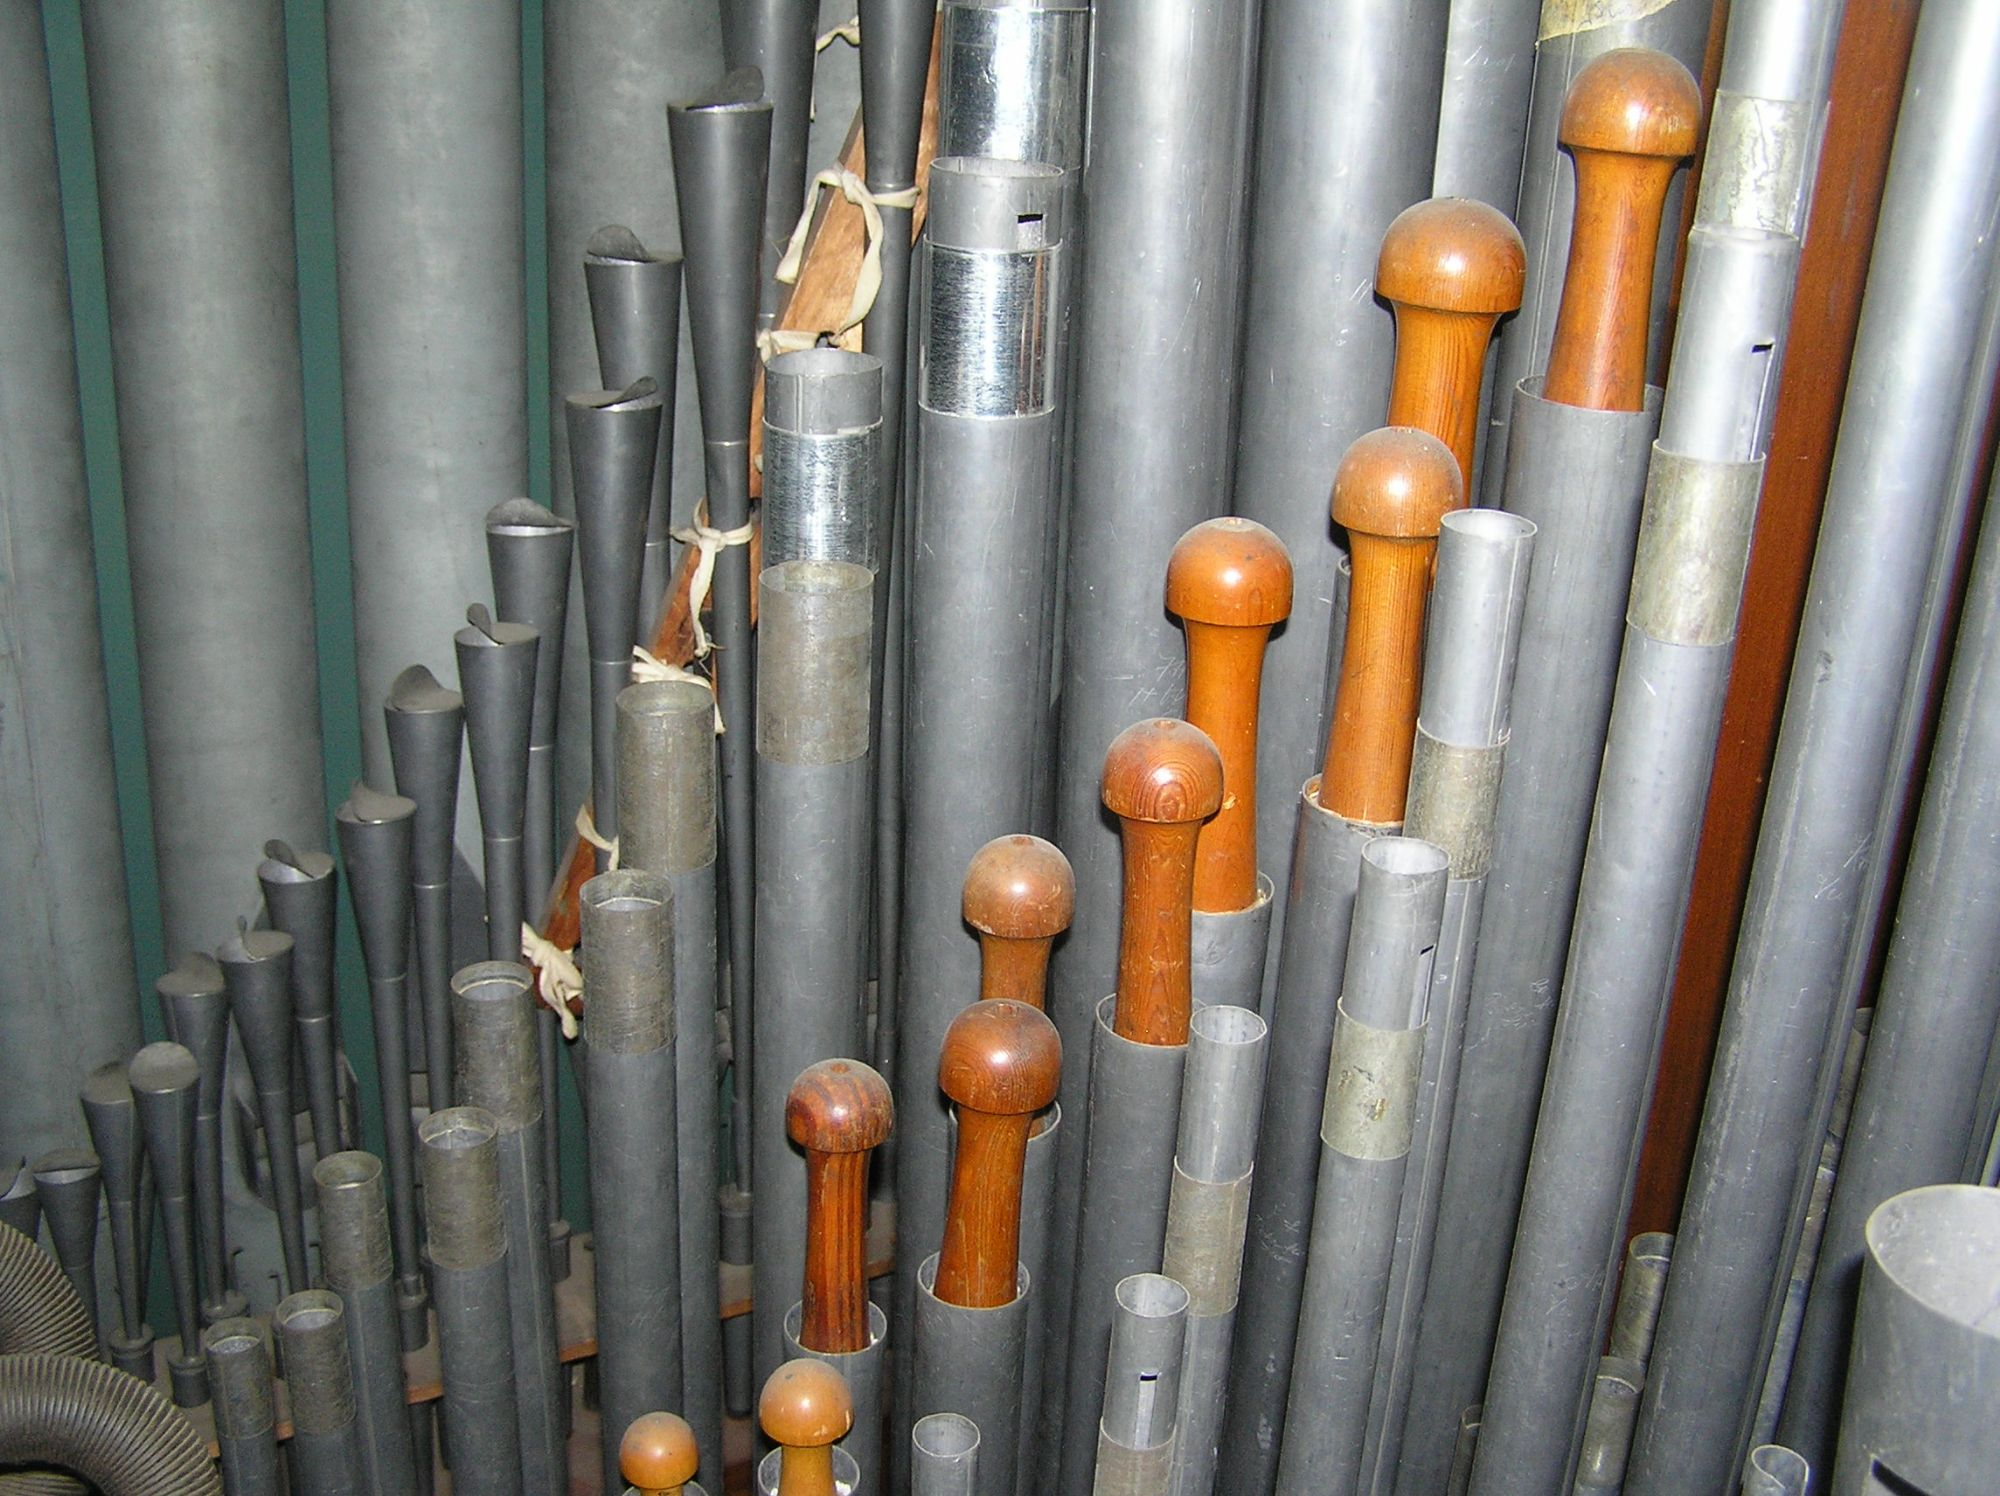 Some swell pipework